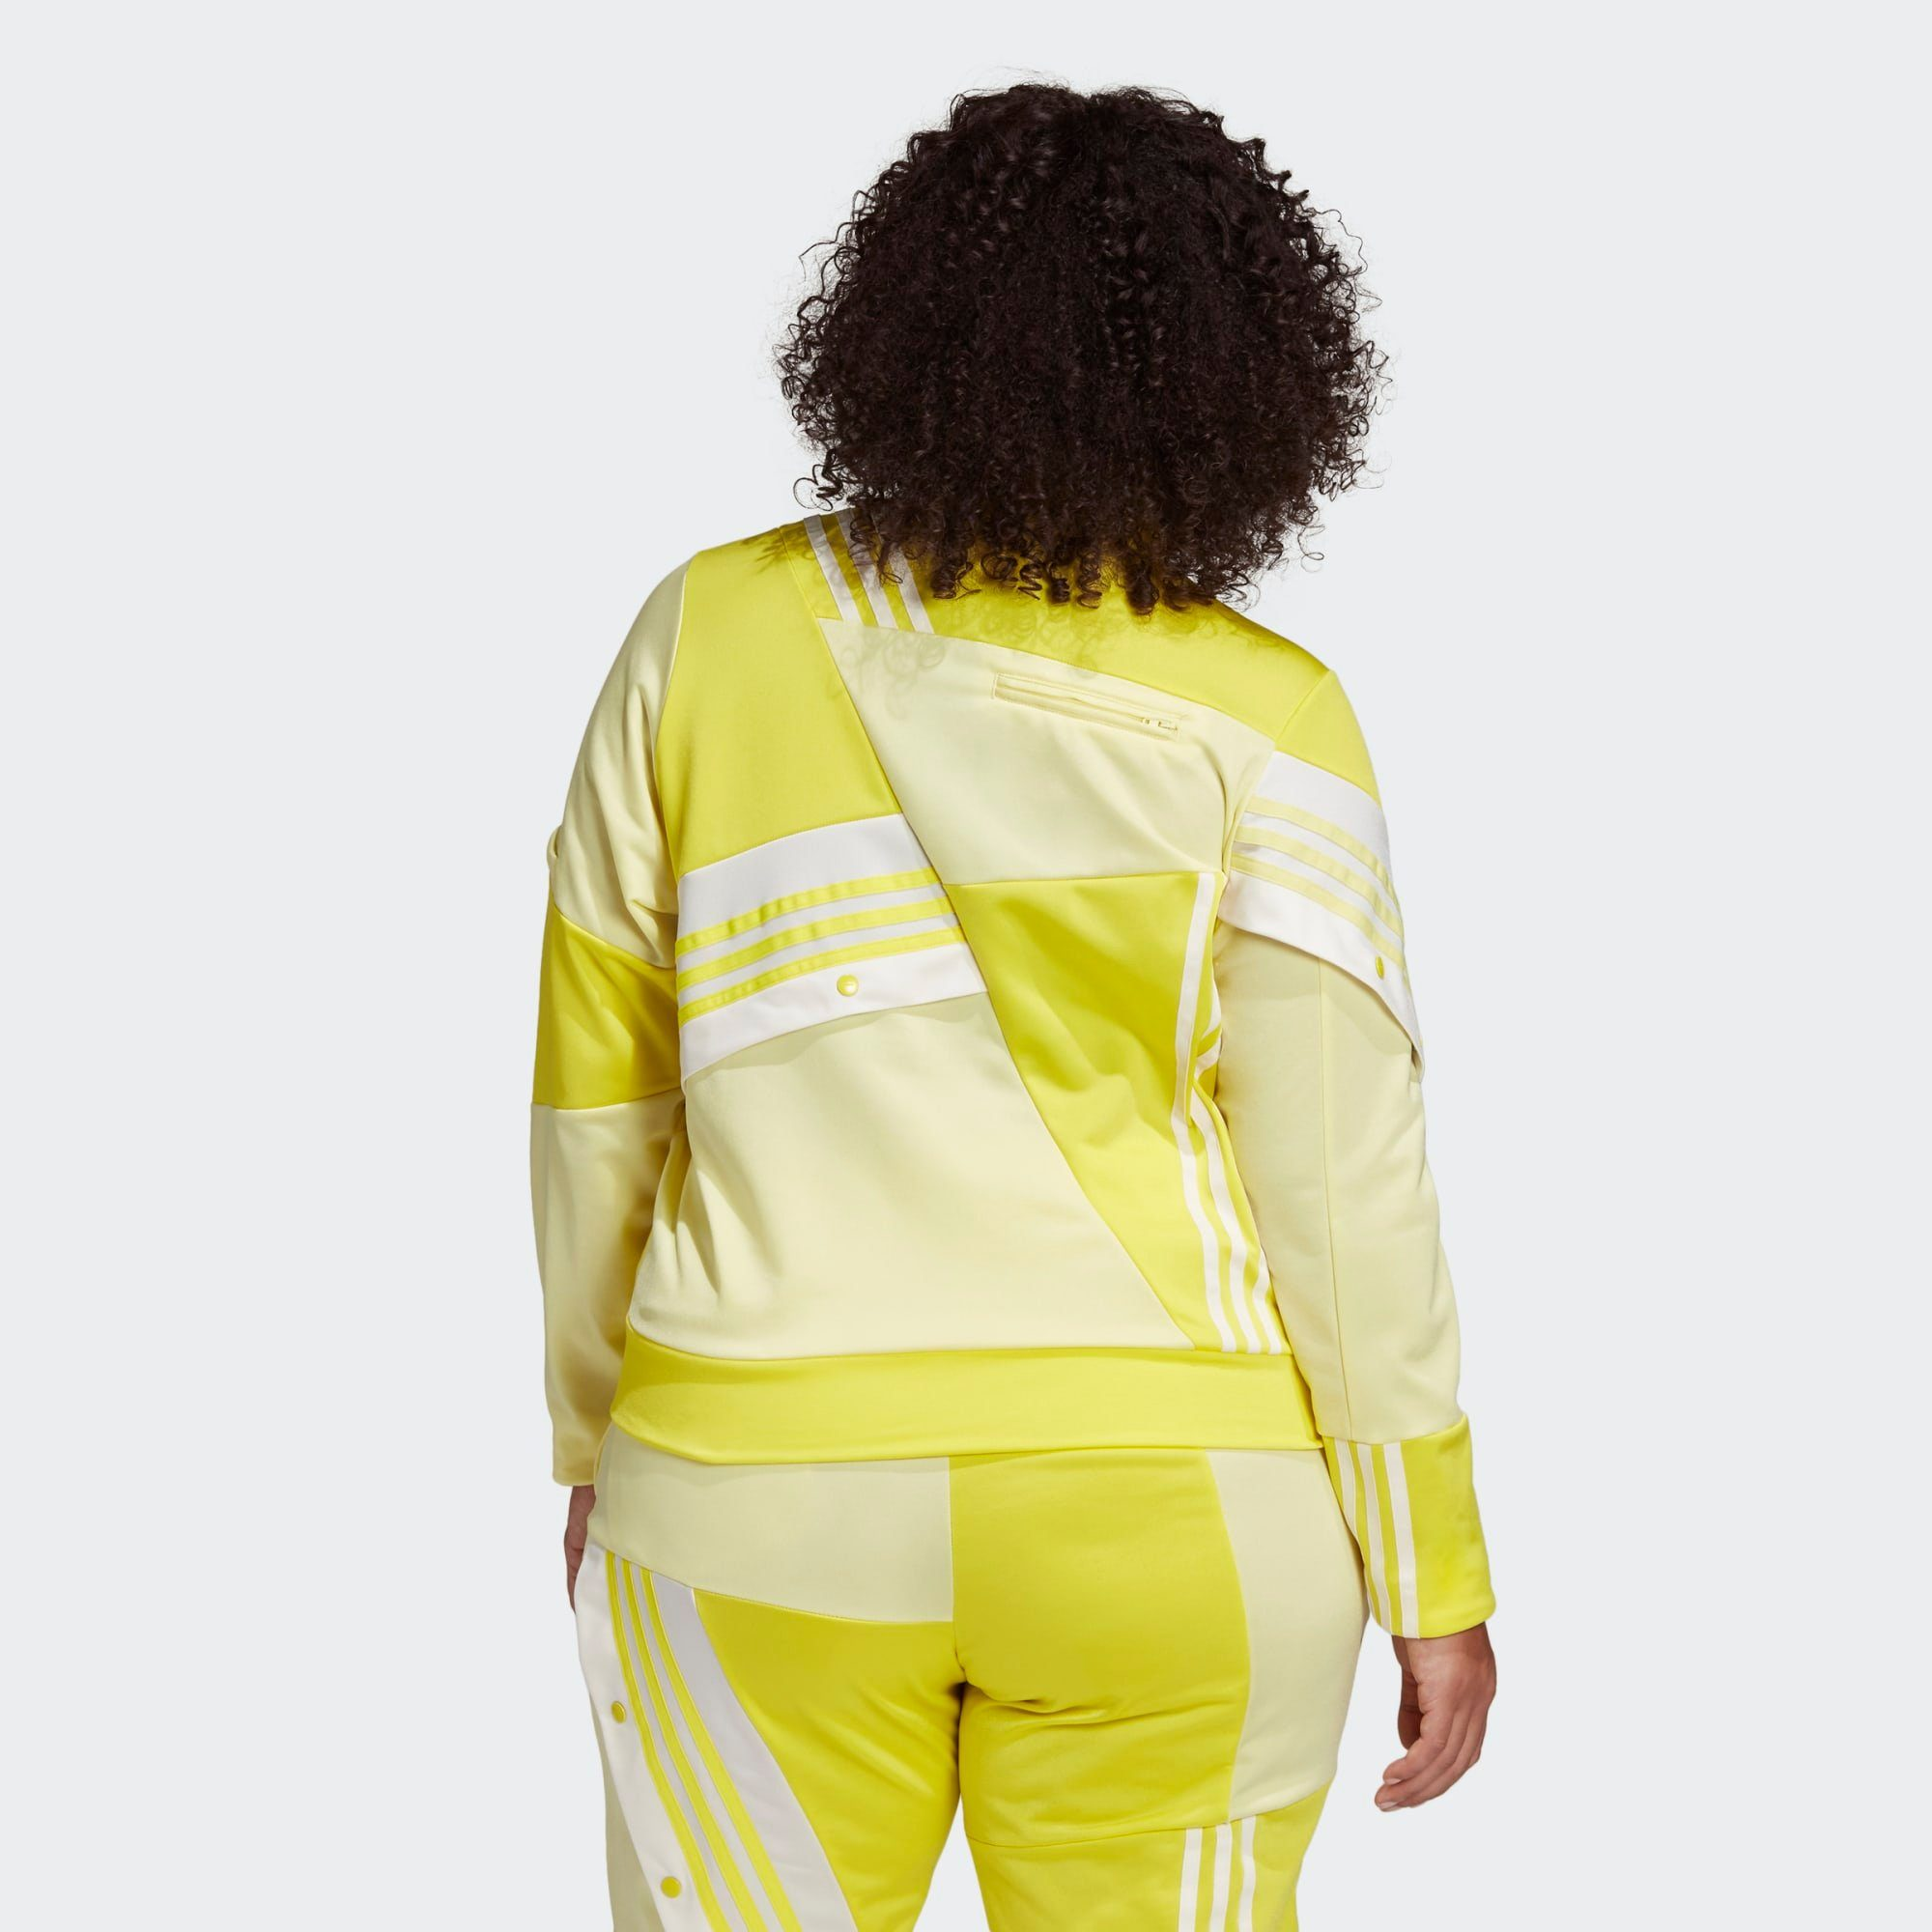 adidas Originals Sweatjacke Daniëlle Cathari Originals Jacke